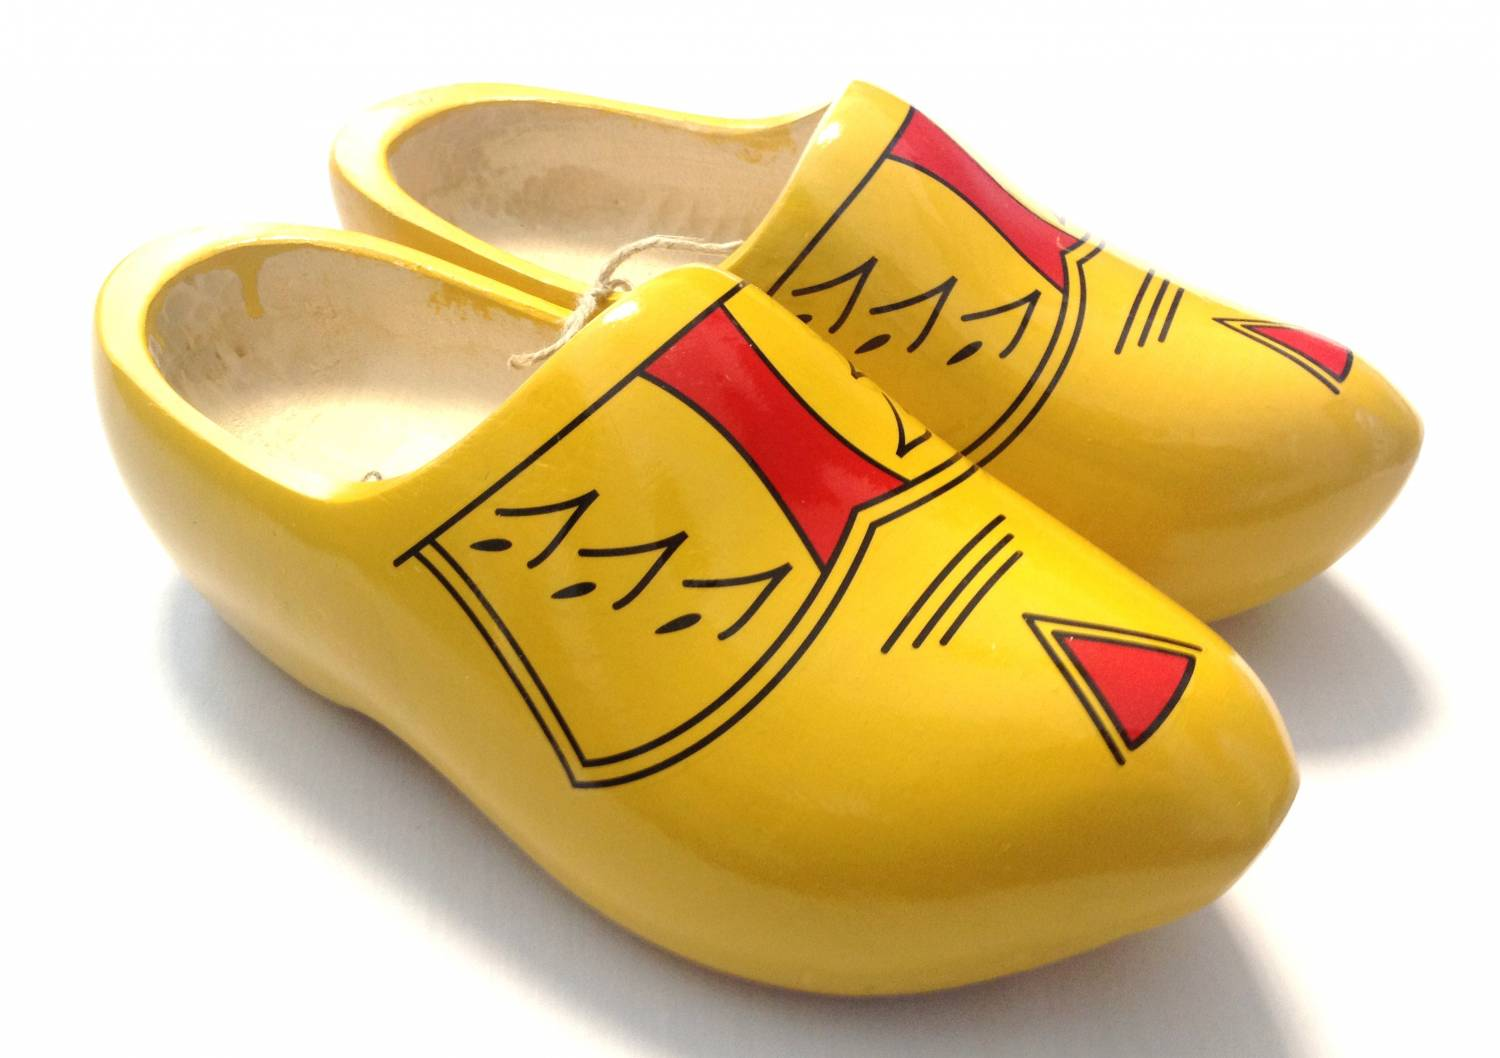 The wooden shoe is back with a vengeance!